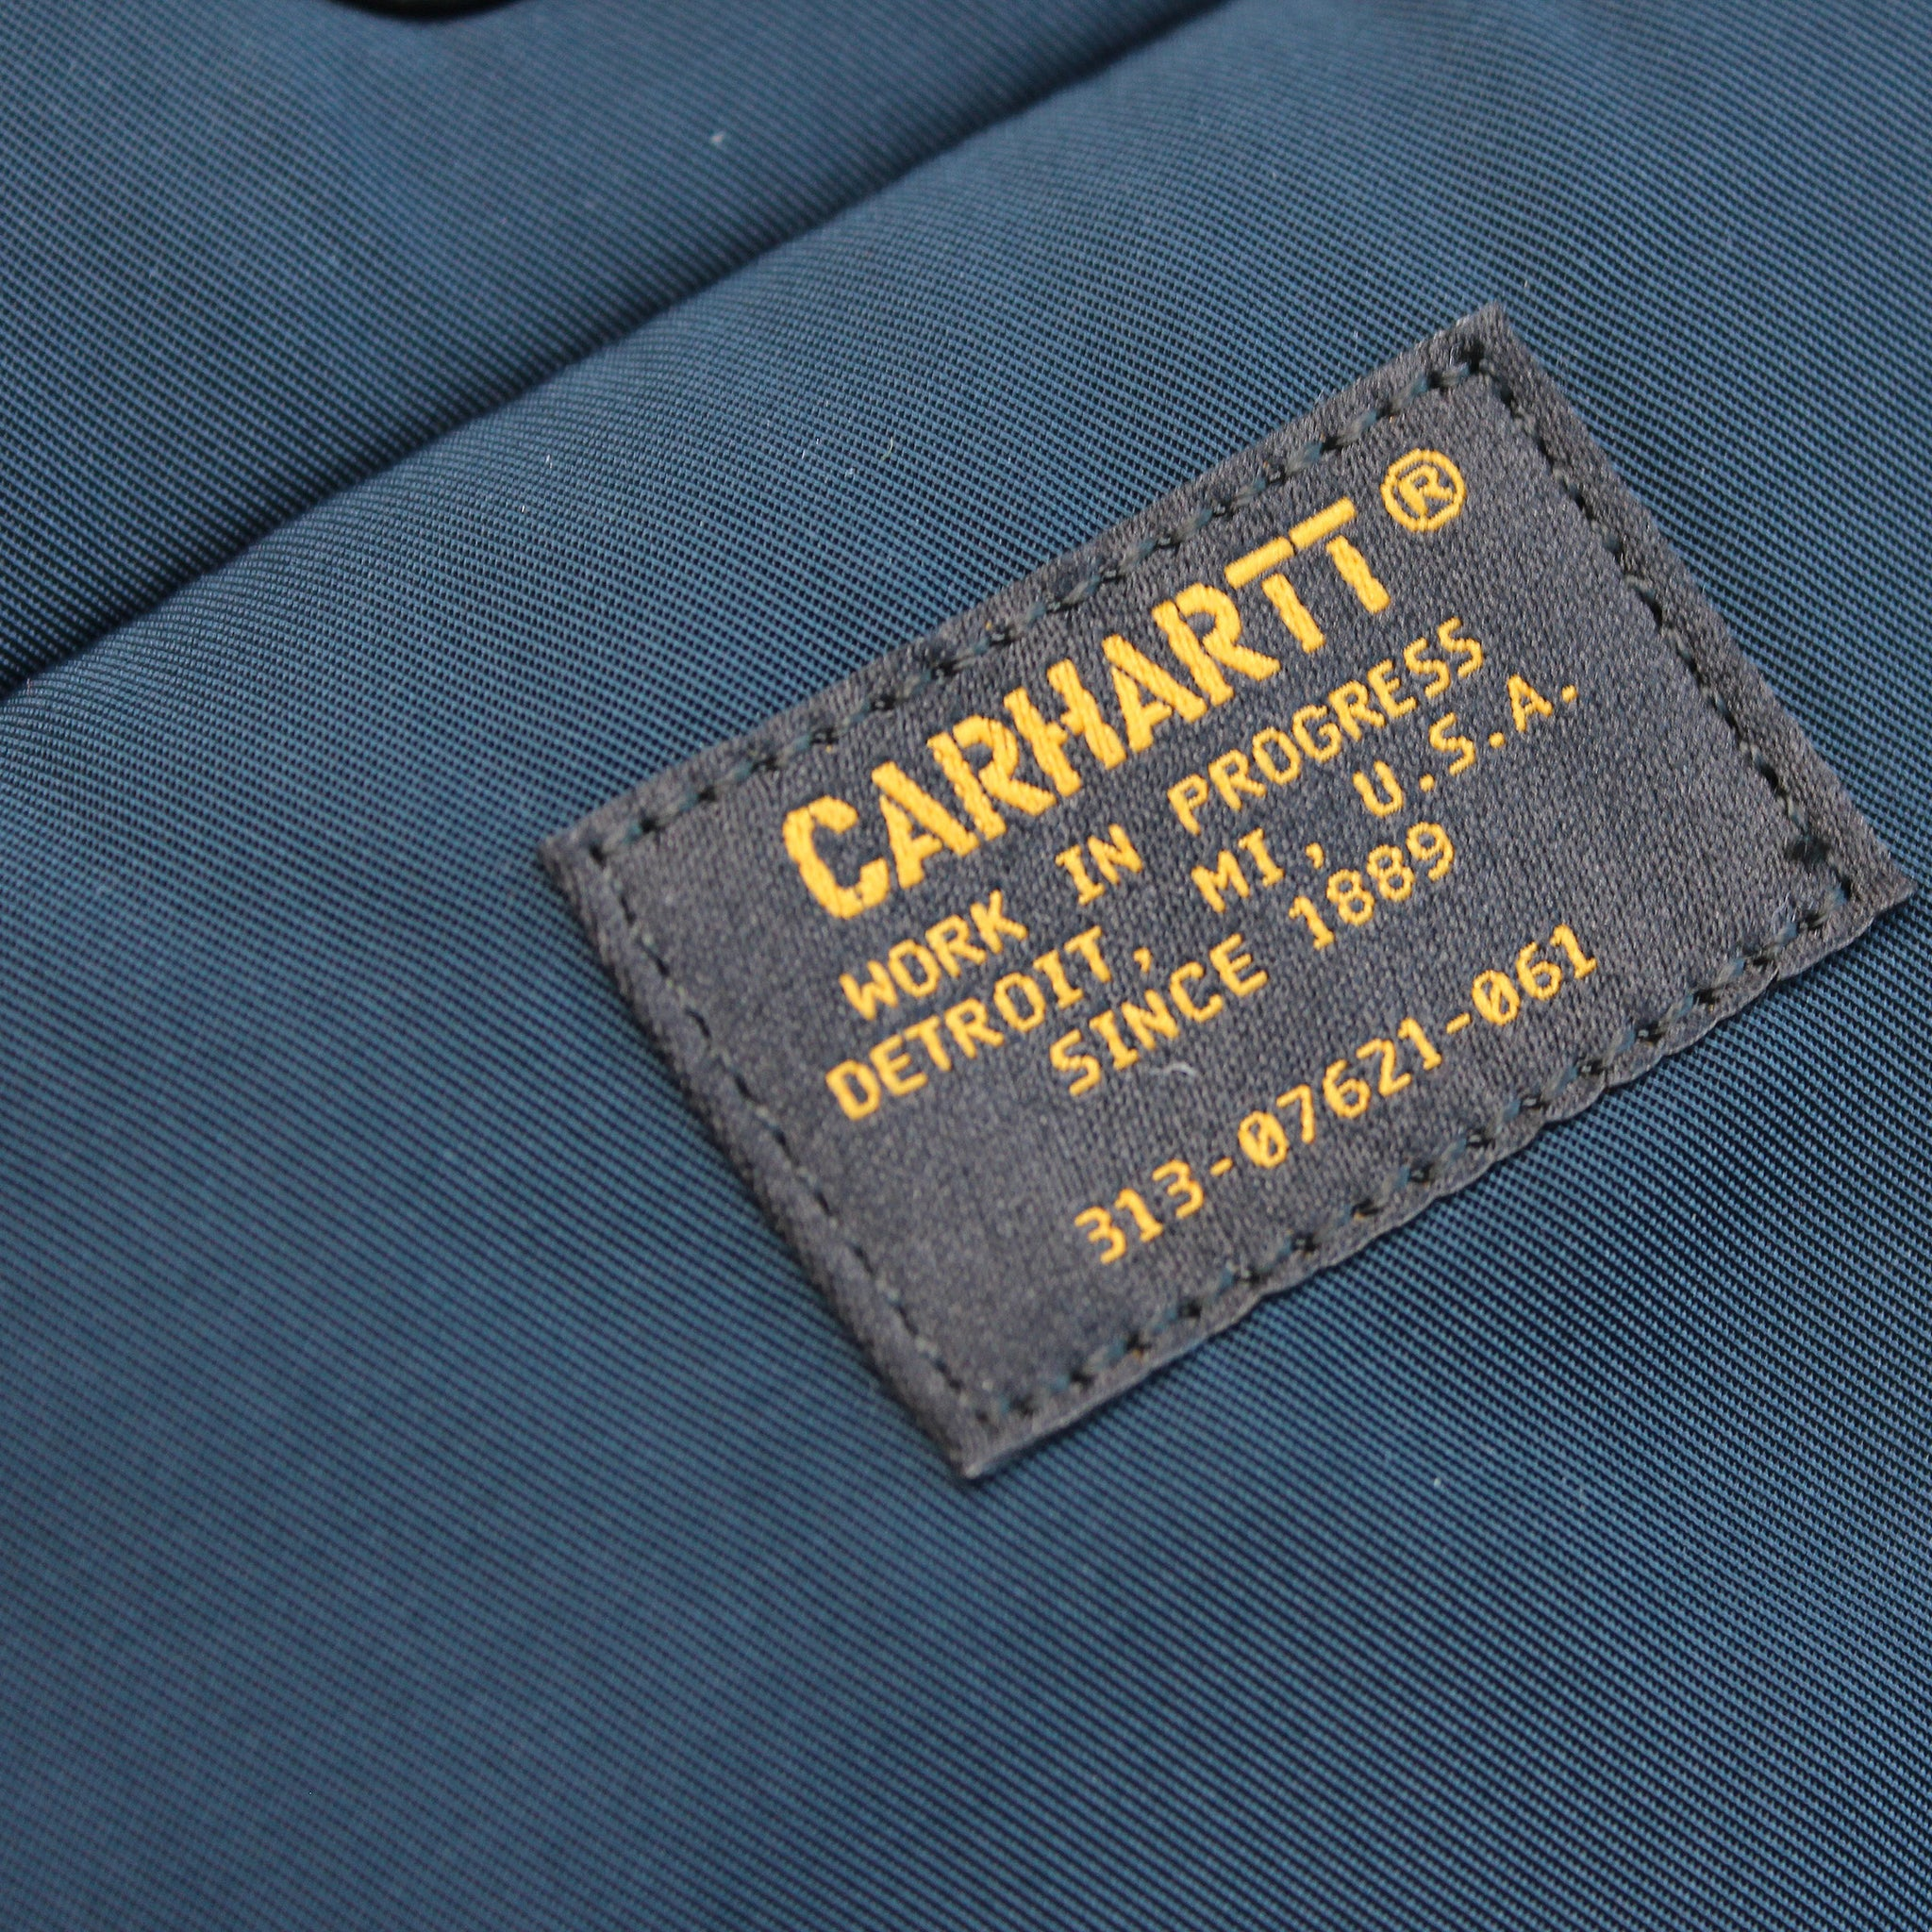 Carhartt WIP Military Shopper